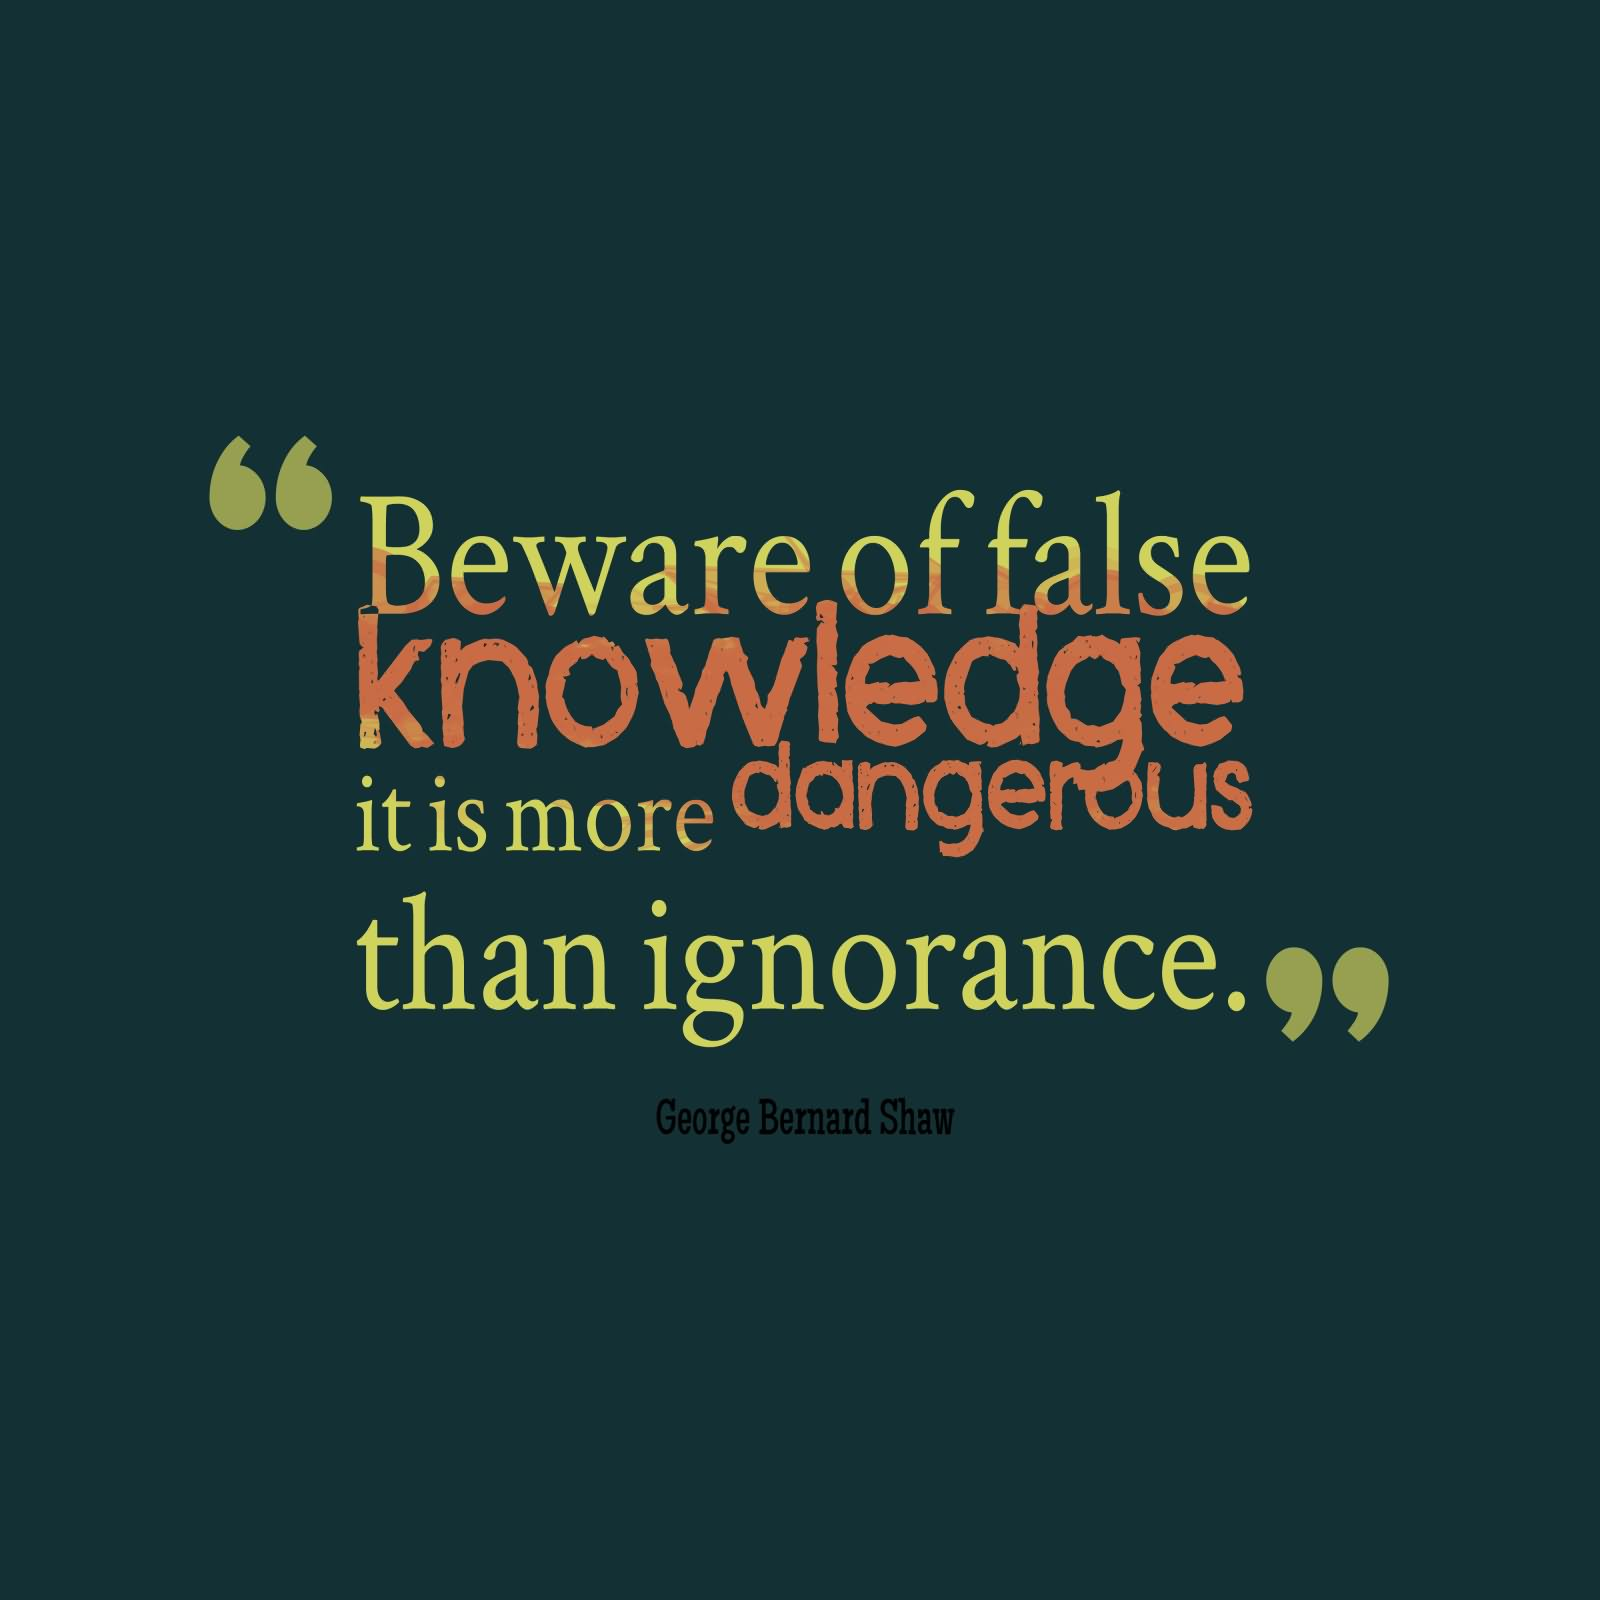 dangers of knowledge The dangers of a little knowledge dr schwartz's weblog by allan schwartz, lcsw, phd allan schwartz, lcsw, phd was in private practice for more than thirty years.